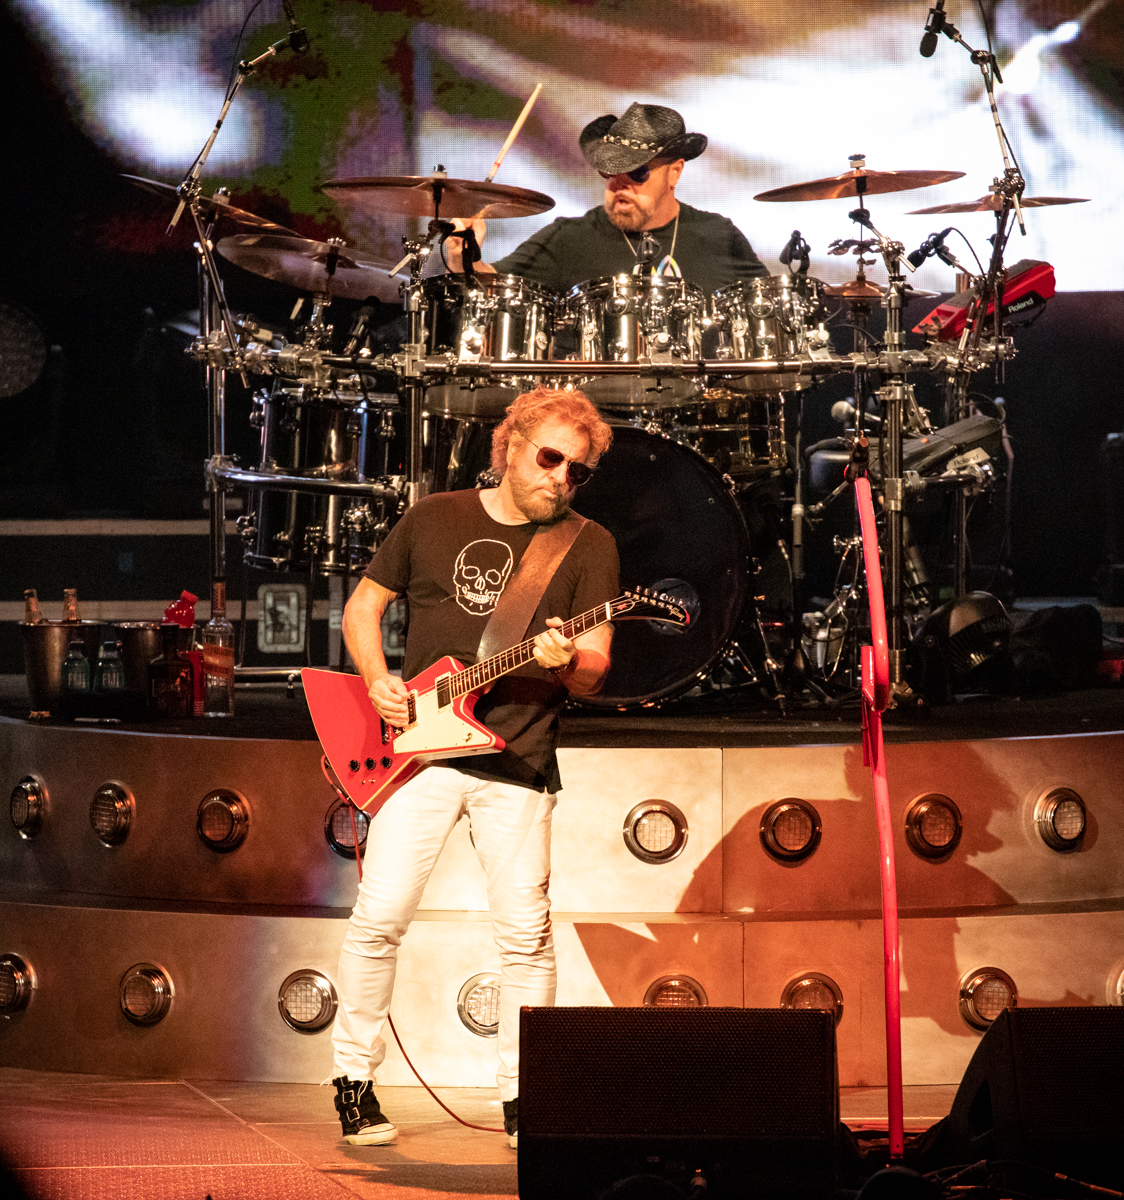 Jason Bonham and Sammy Hagar of The Circle perform at Hollywood Casino Amphitheatre in Tinley Park, IL on 06/07/2019.